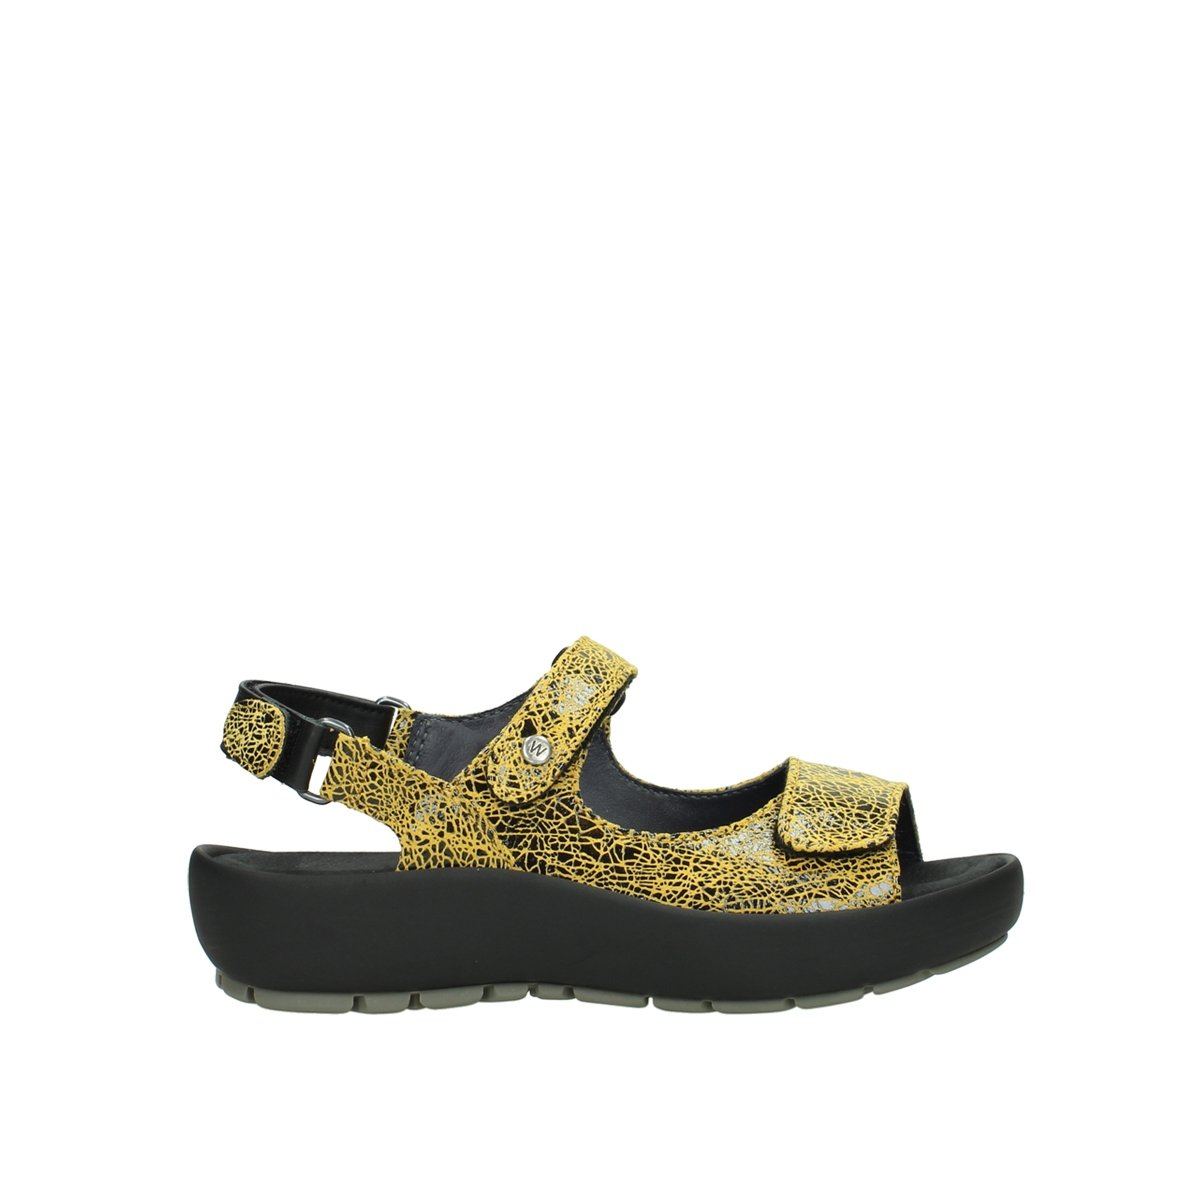 Wolky Comfort Rio B07BM94ZP1 4 B(M) US|40900 Yellow Suede